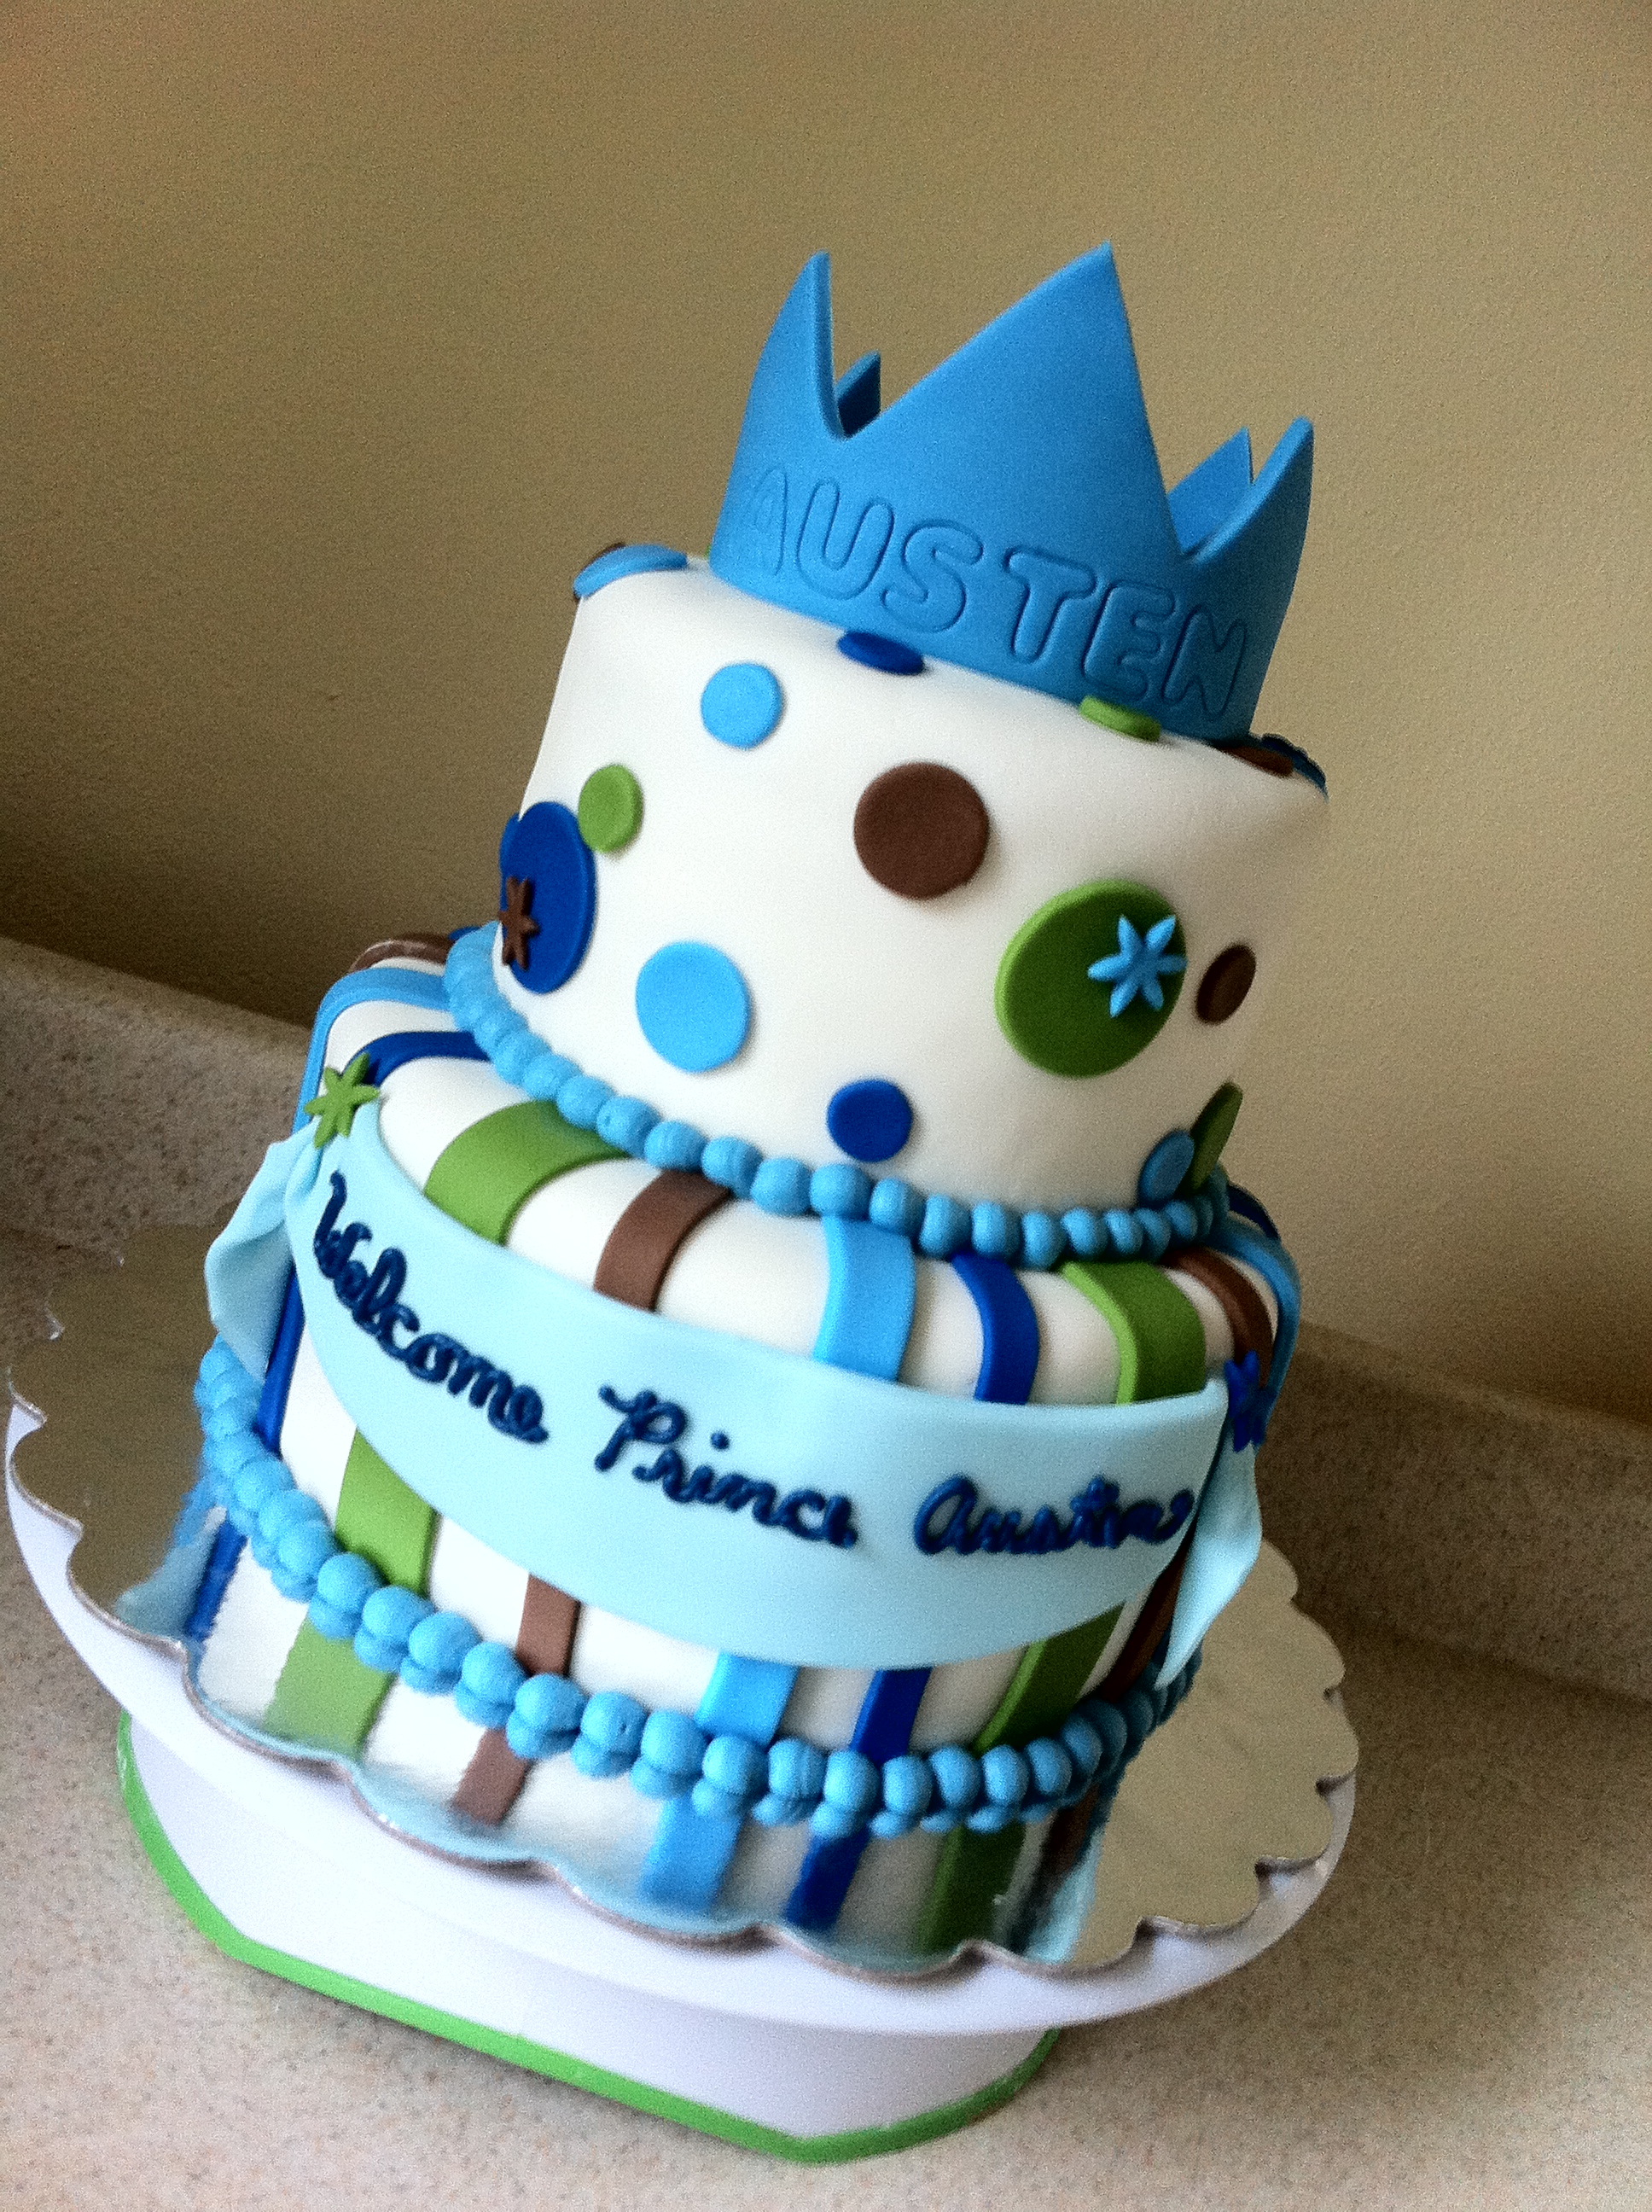 Epic Prince Baby Shower Cake | Lolo's Cakes & Sweets throughout Beautiful Blue And Green Baby Shower